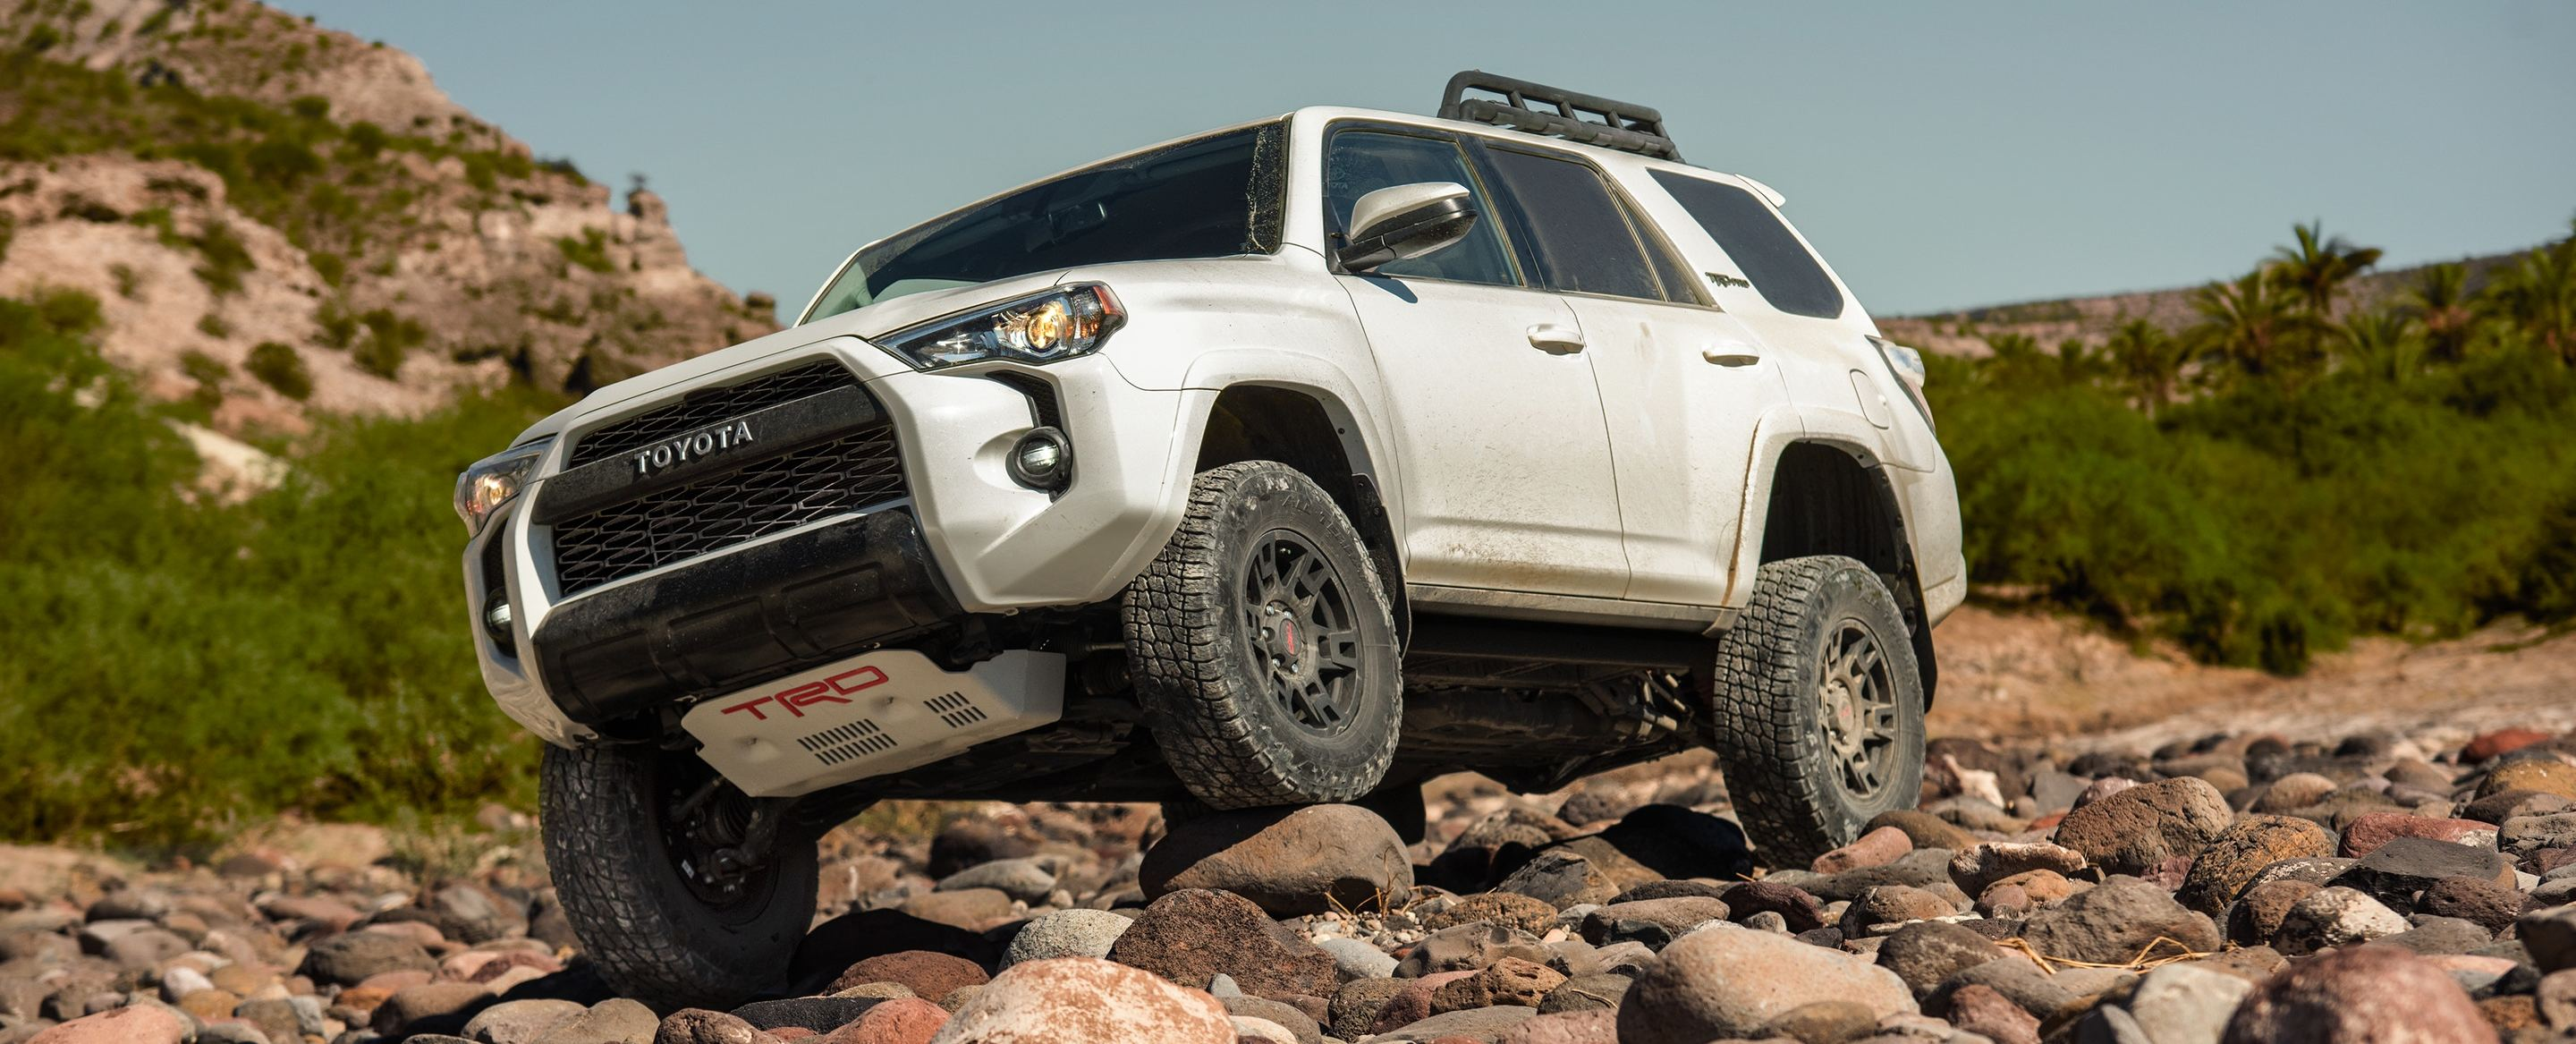 2019 Toyota 4Runner Leasing near West Des Moines, IA